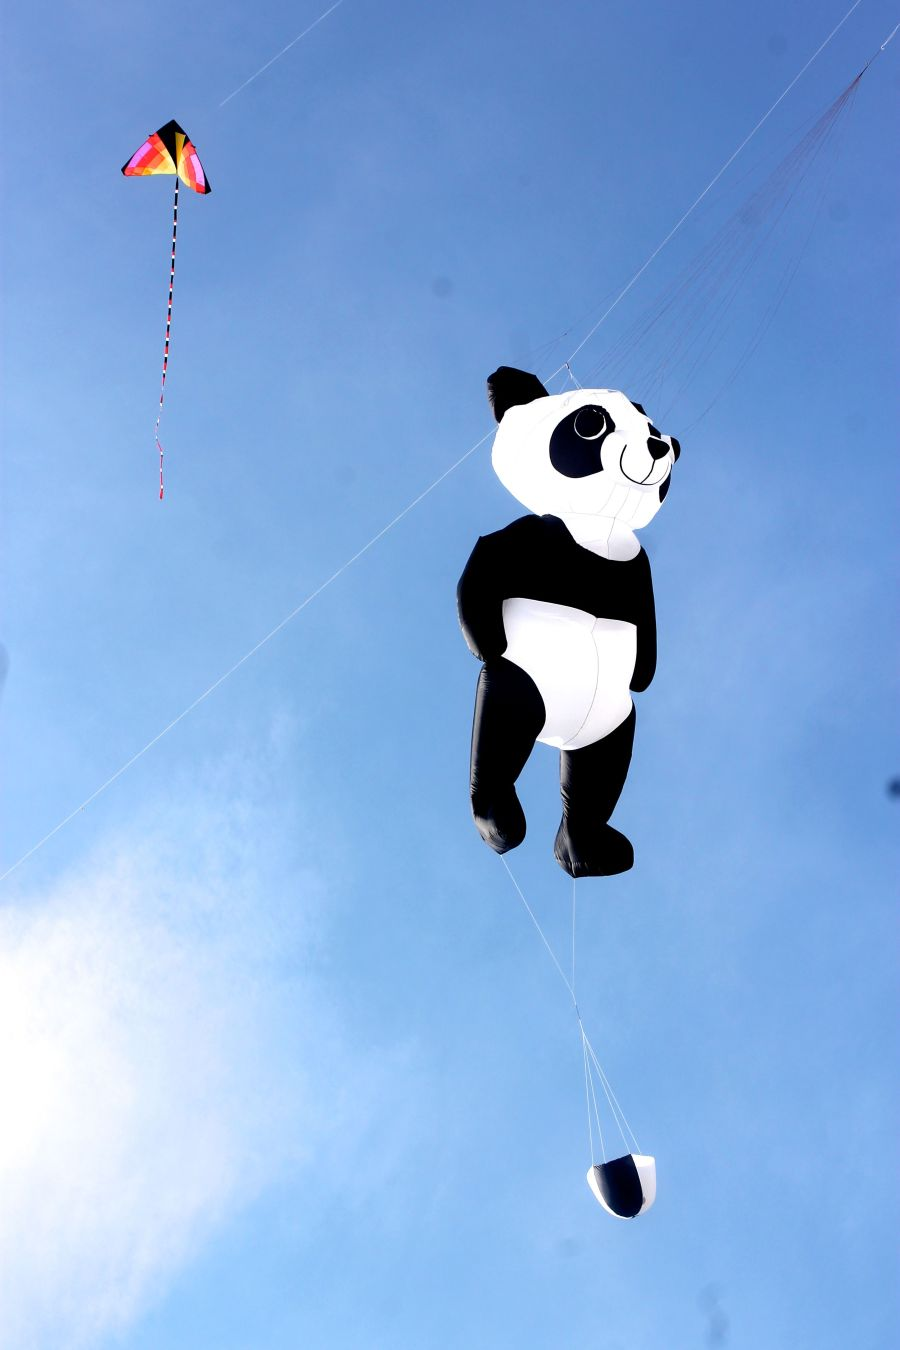 boston revere beach National Sand Sculpting Festival panda kite 2